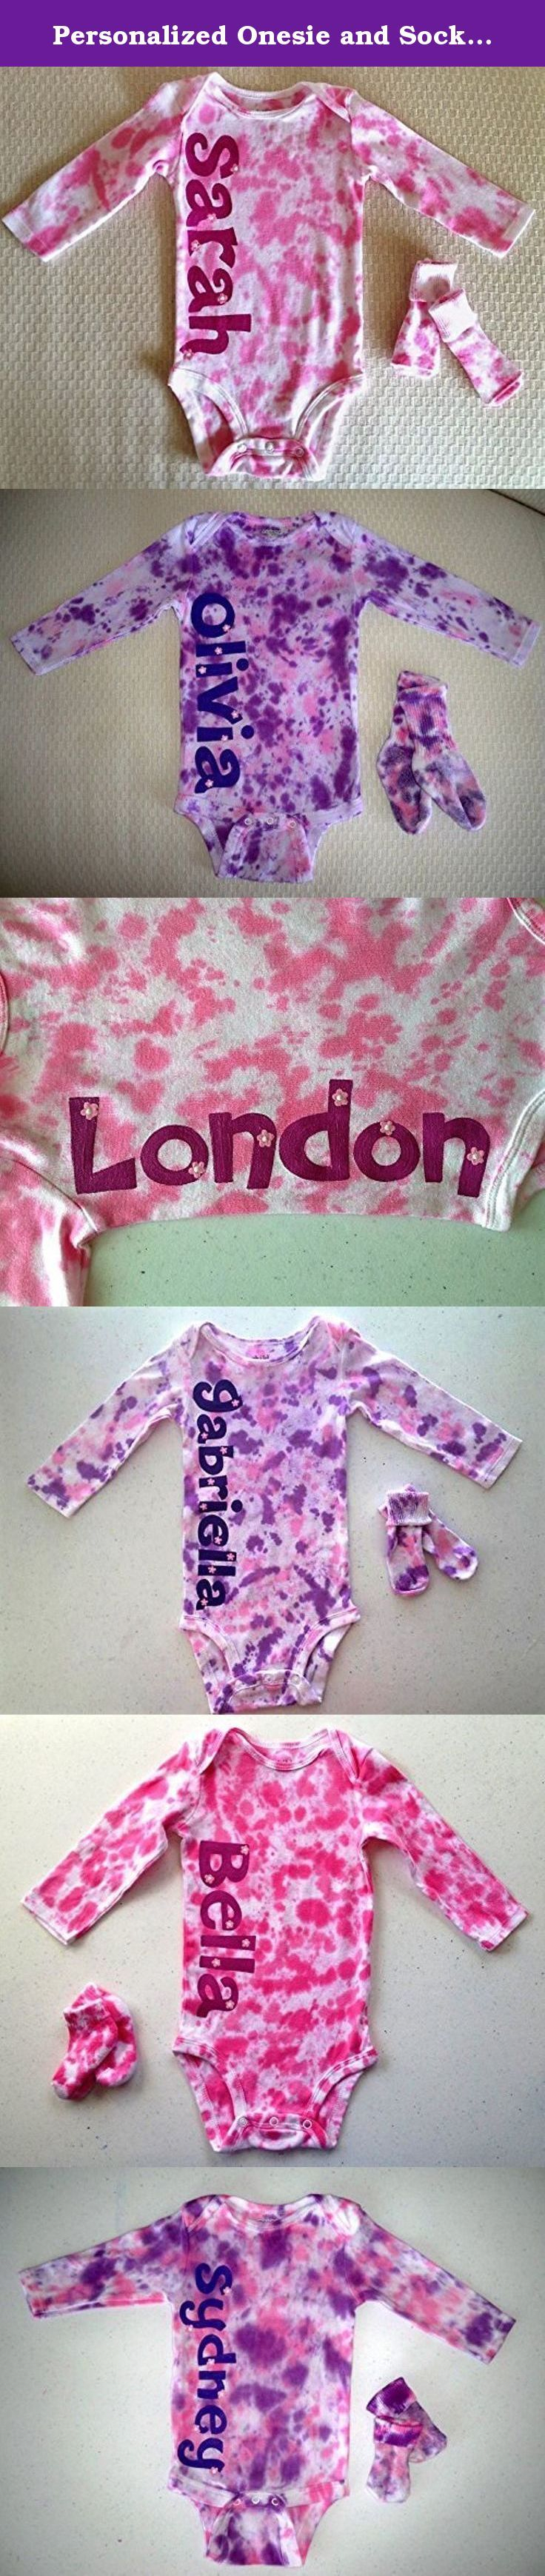 Personalized Onesie and Socks ~ Tie Dye & Hand Painted. This adorable 100% cotton Onesie has long sleeves and snaps on the bottom for easy changing. So cute tie dyed but even cuter with baby's name down the side! Matching socks are included. Dyes won't fade and are infant safe, paint is soft and non-toxic. Onesie is machine washable and will arrive wrapped in cellophane with attached washing instructions. If you are purchasing as a gift, I am happy to enclose a printed note at no…